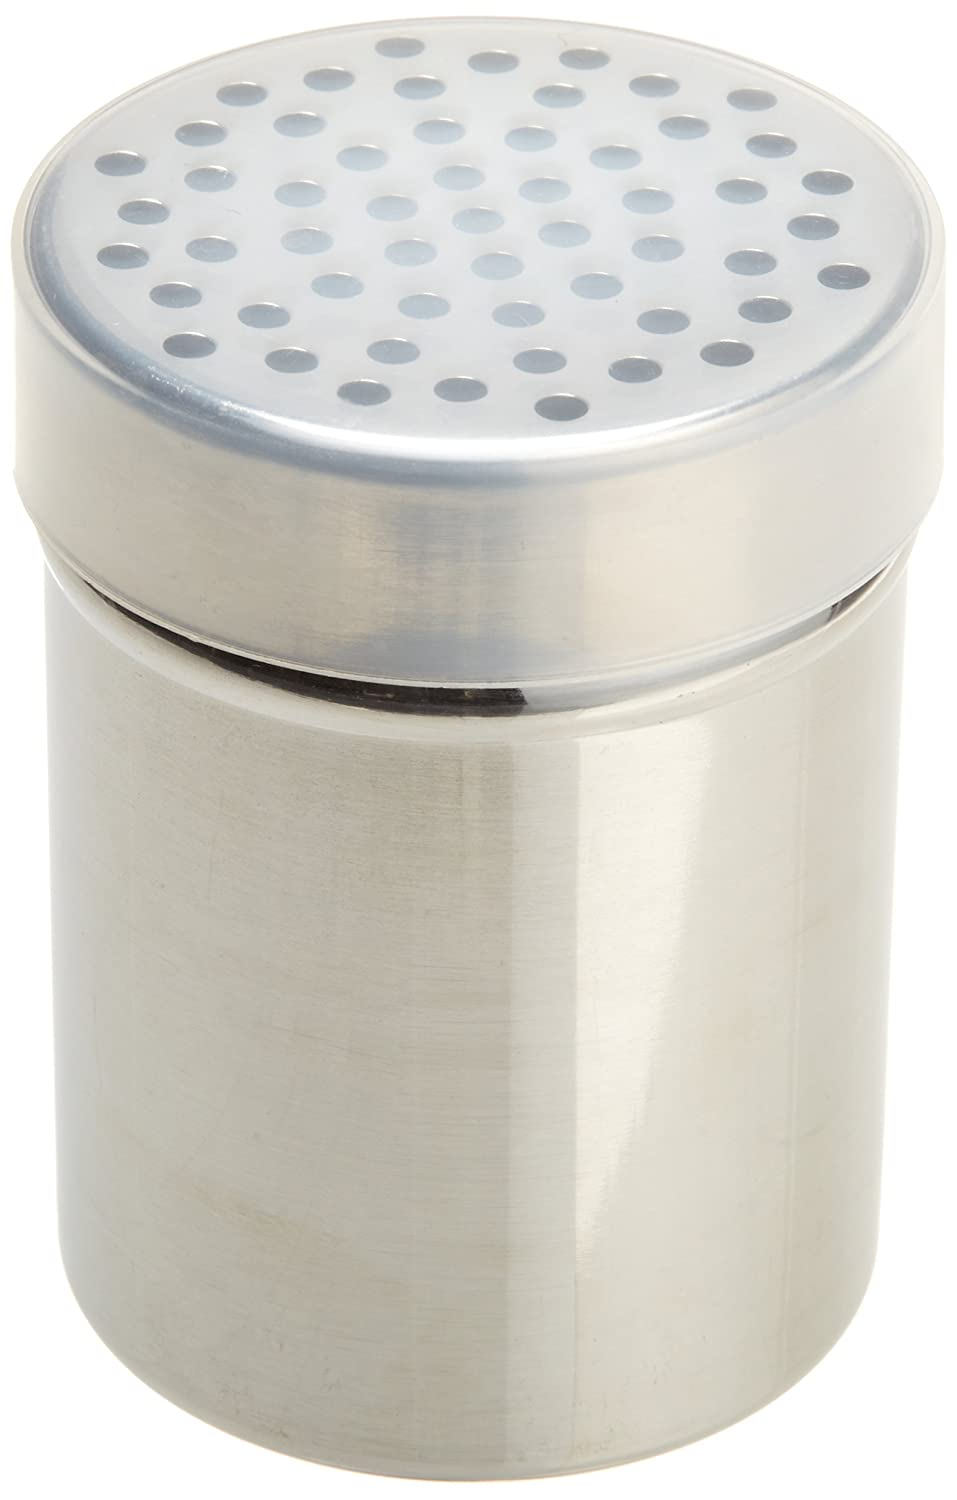 Ateco 1351 10-Ounce Shaker with Course Holes